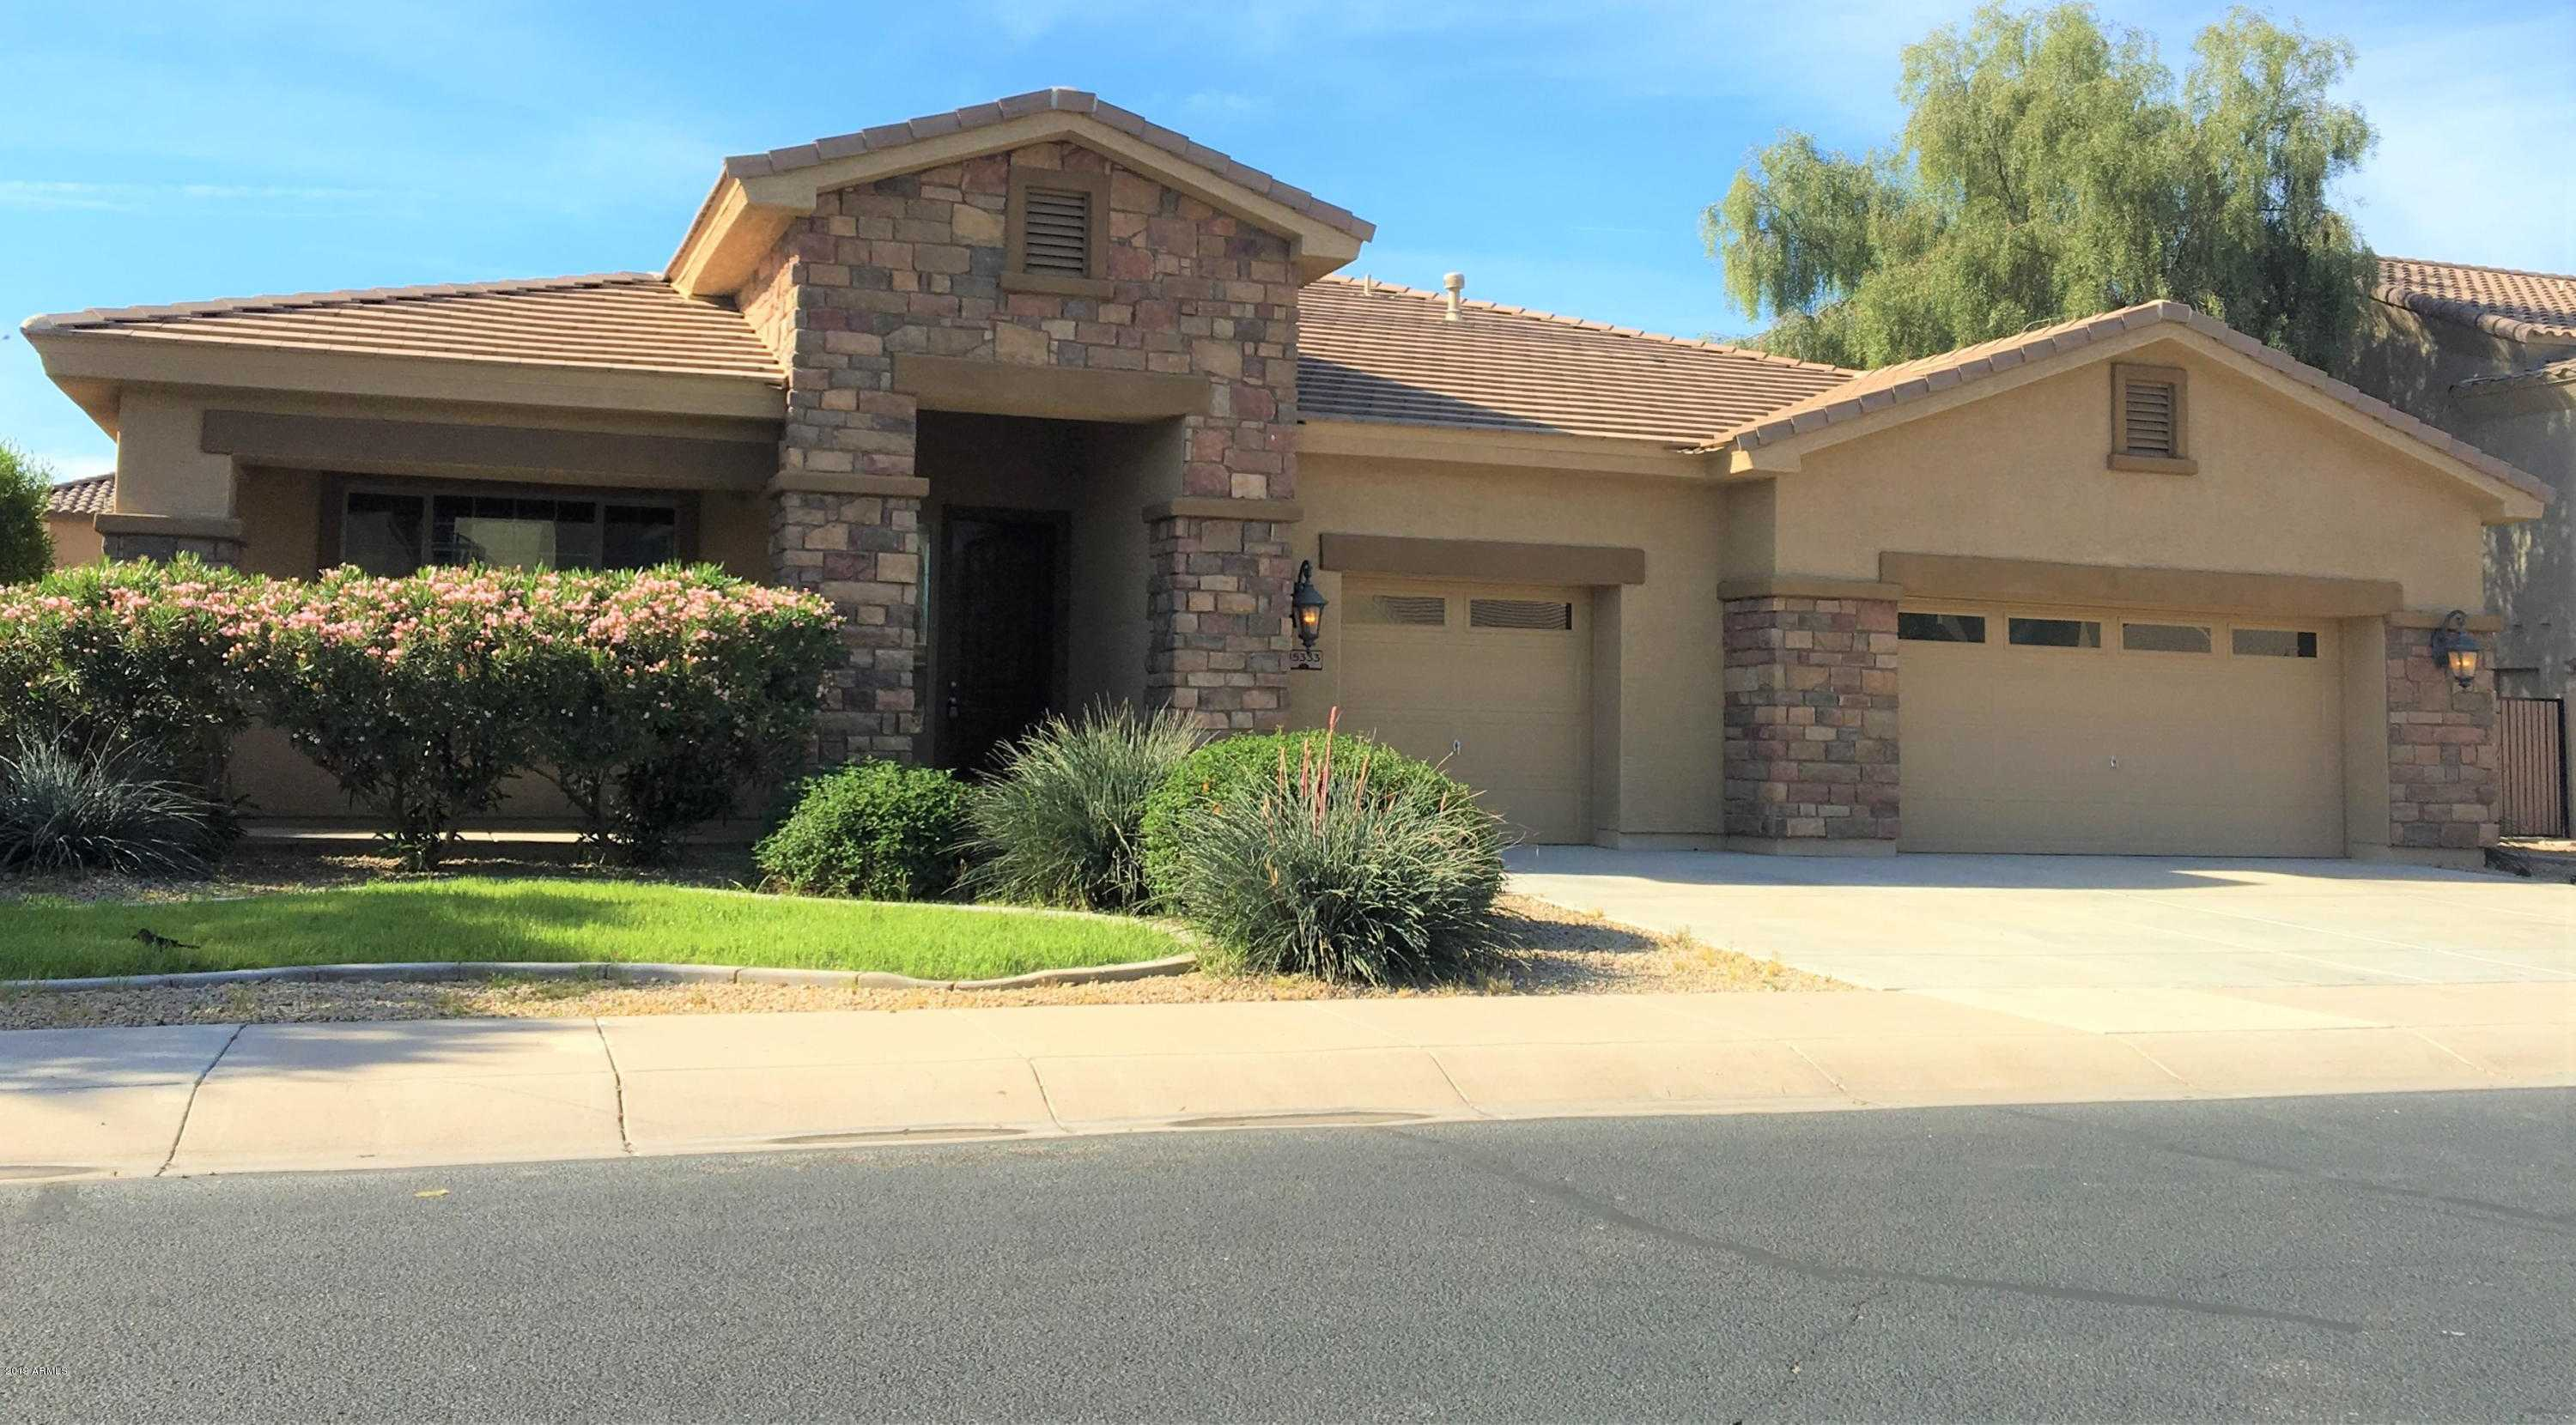 $400,000 - 4Br/3Ba - Home for Sale in Palm Valley Phase 5, Goodyear